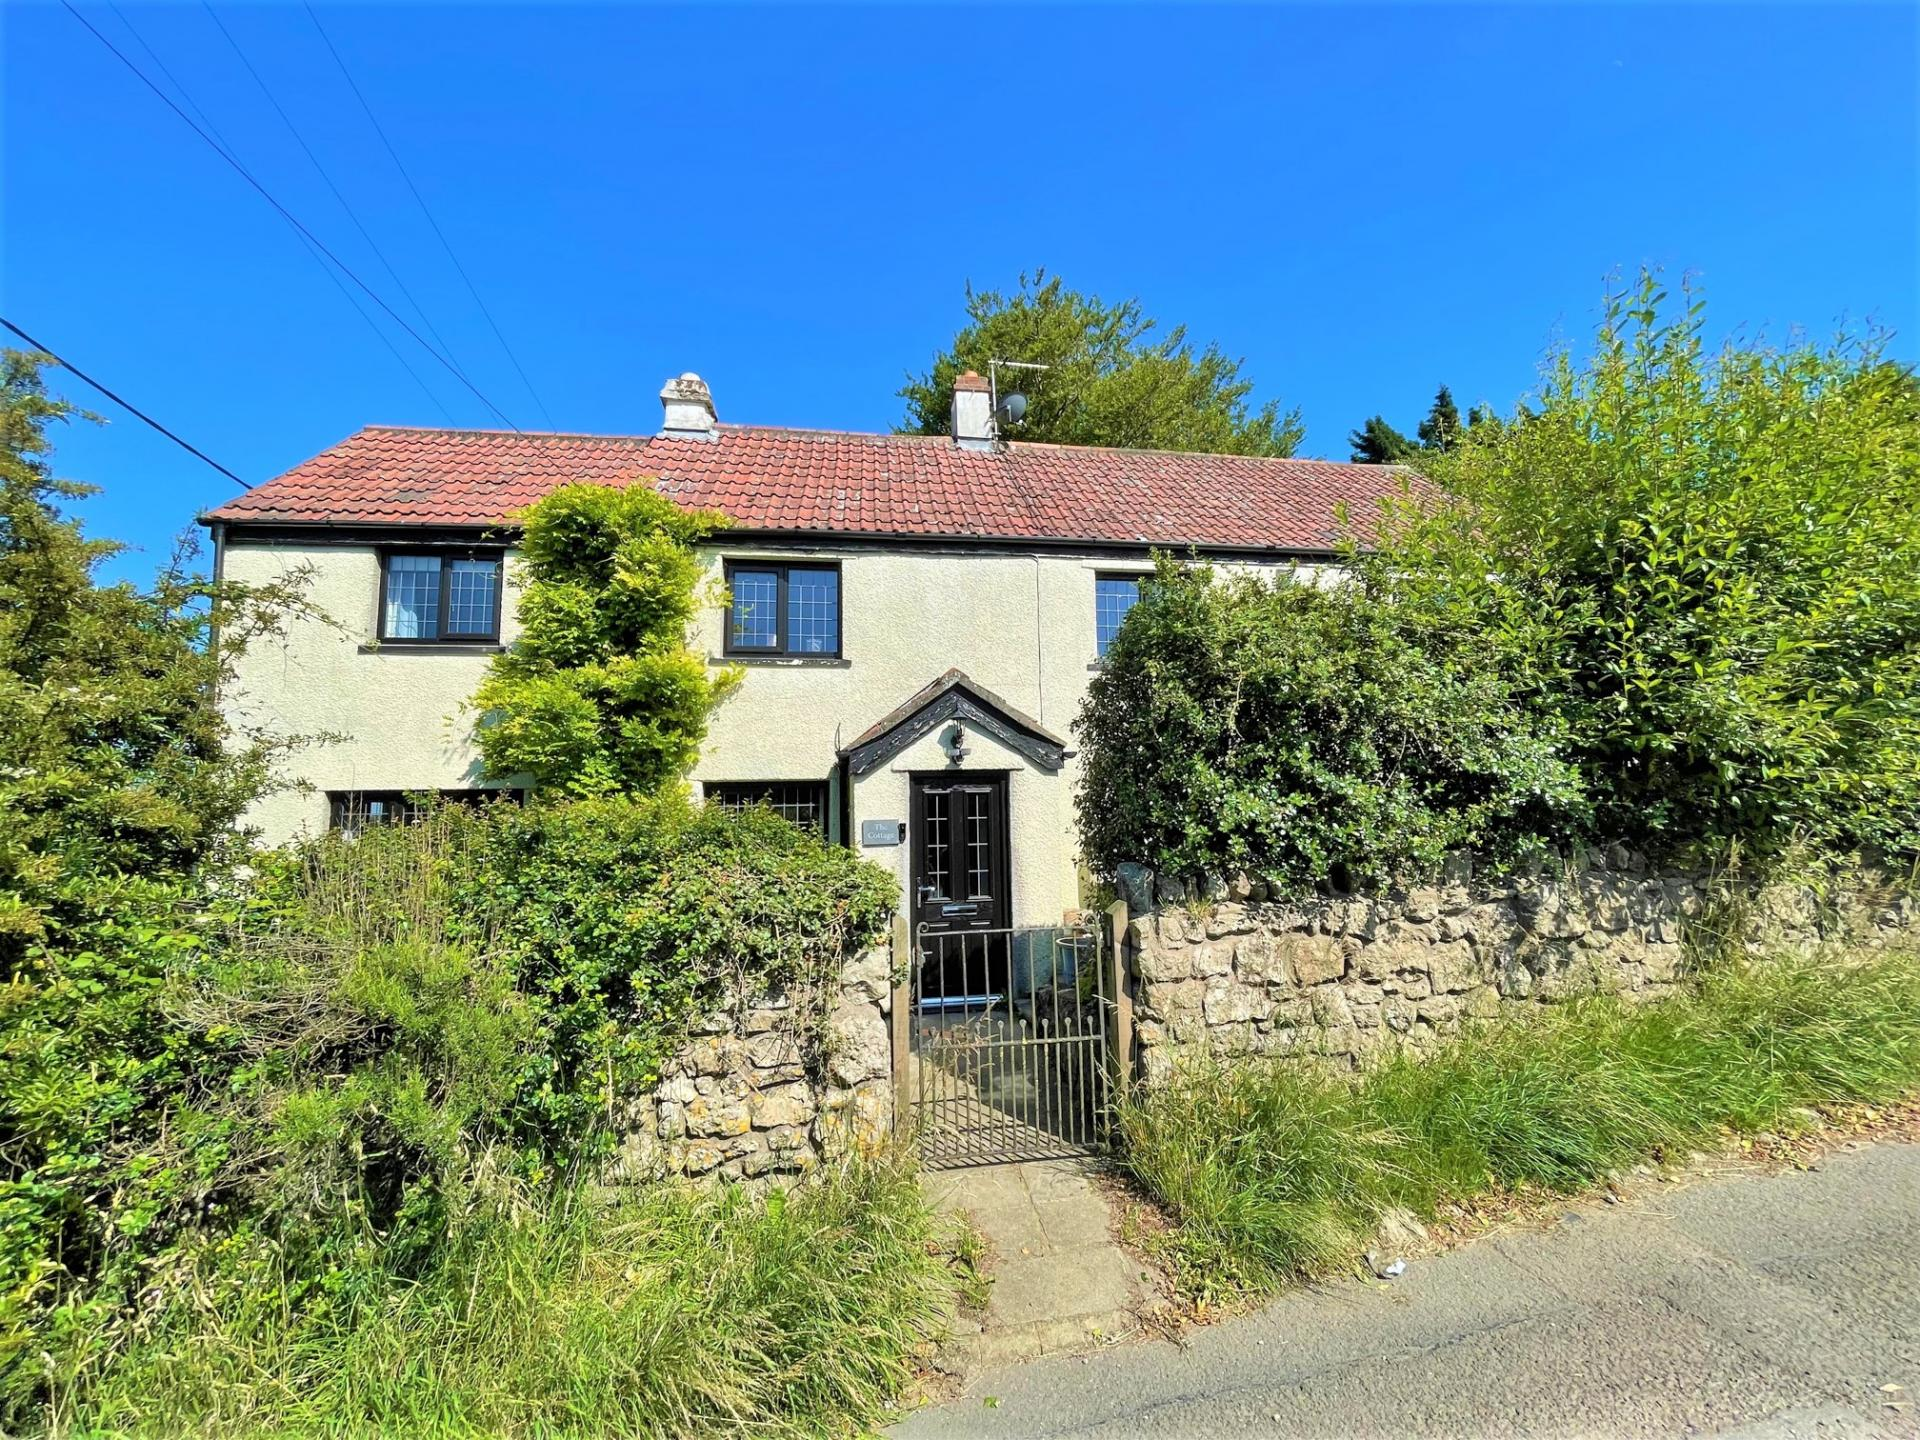 4 Bedroom Detached House for sale in Dundry Somerset country